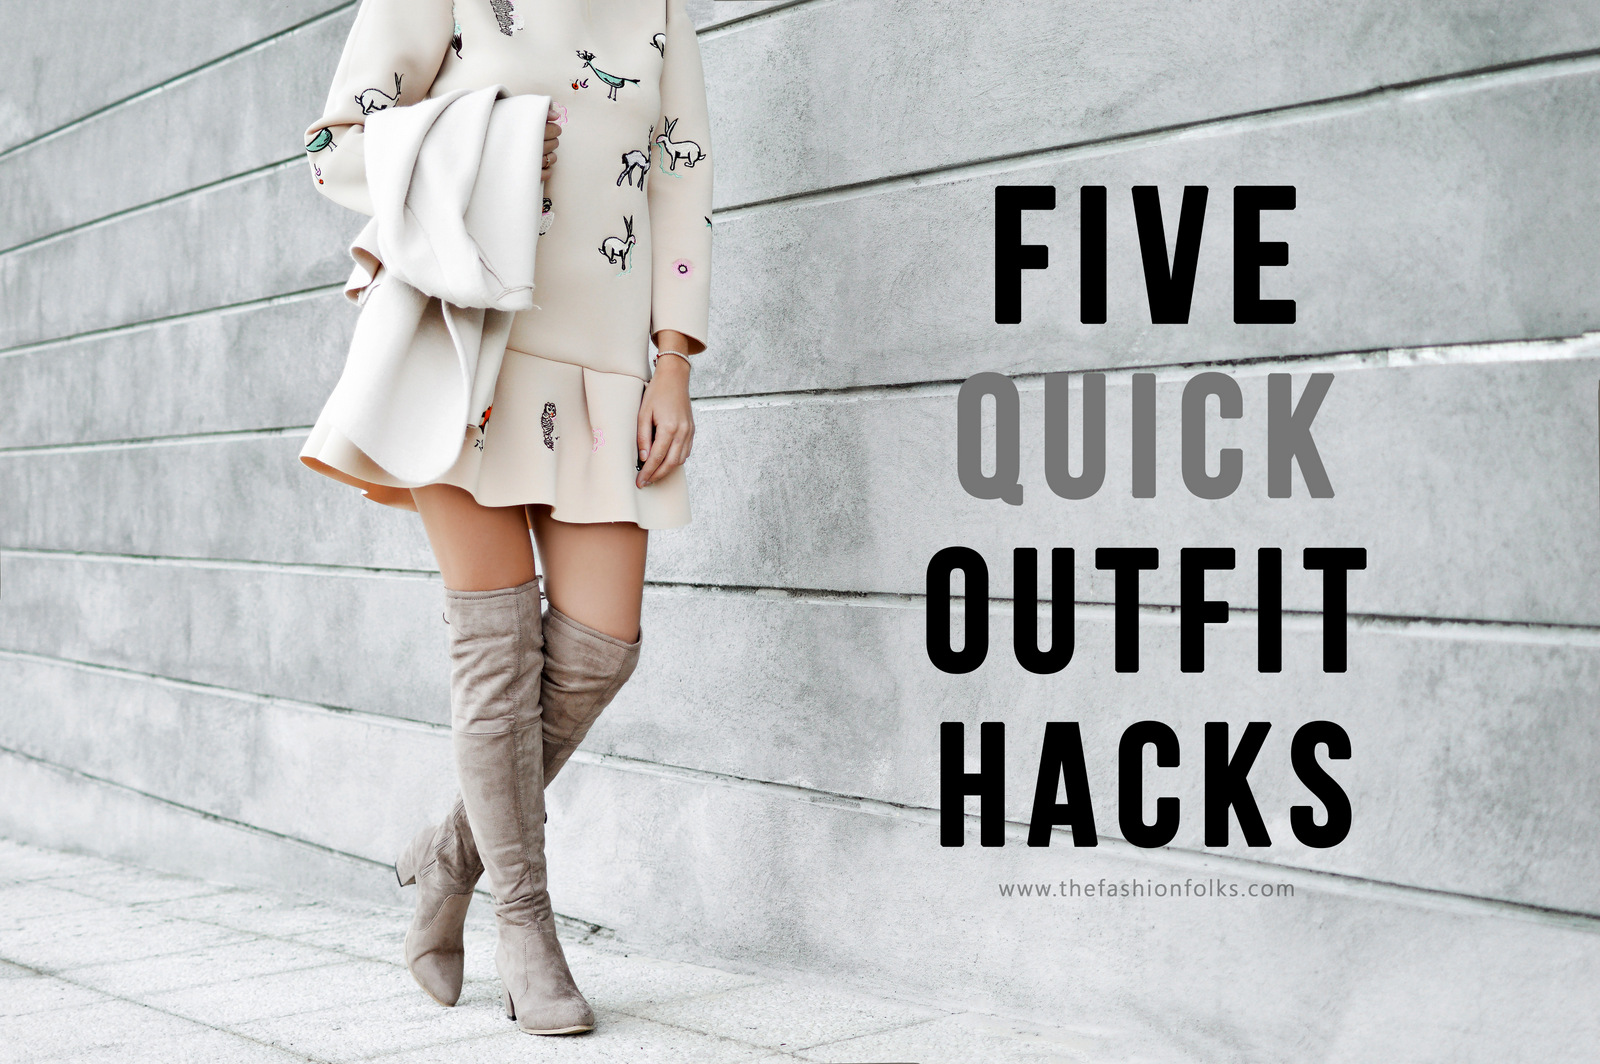 Five Quick Outfit Hacks